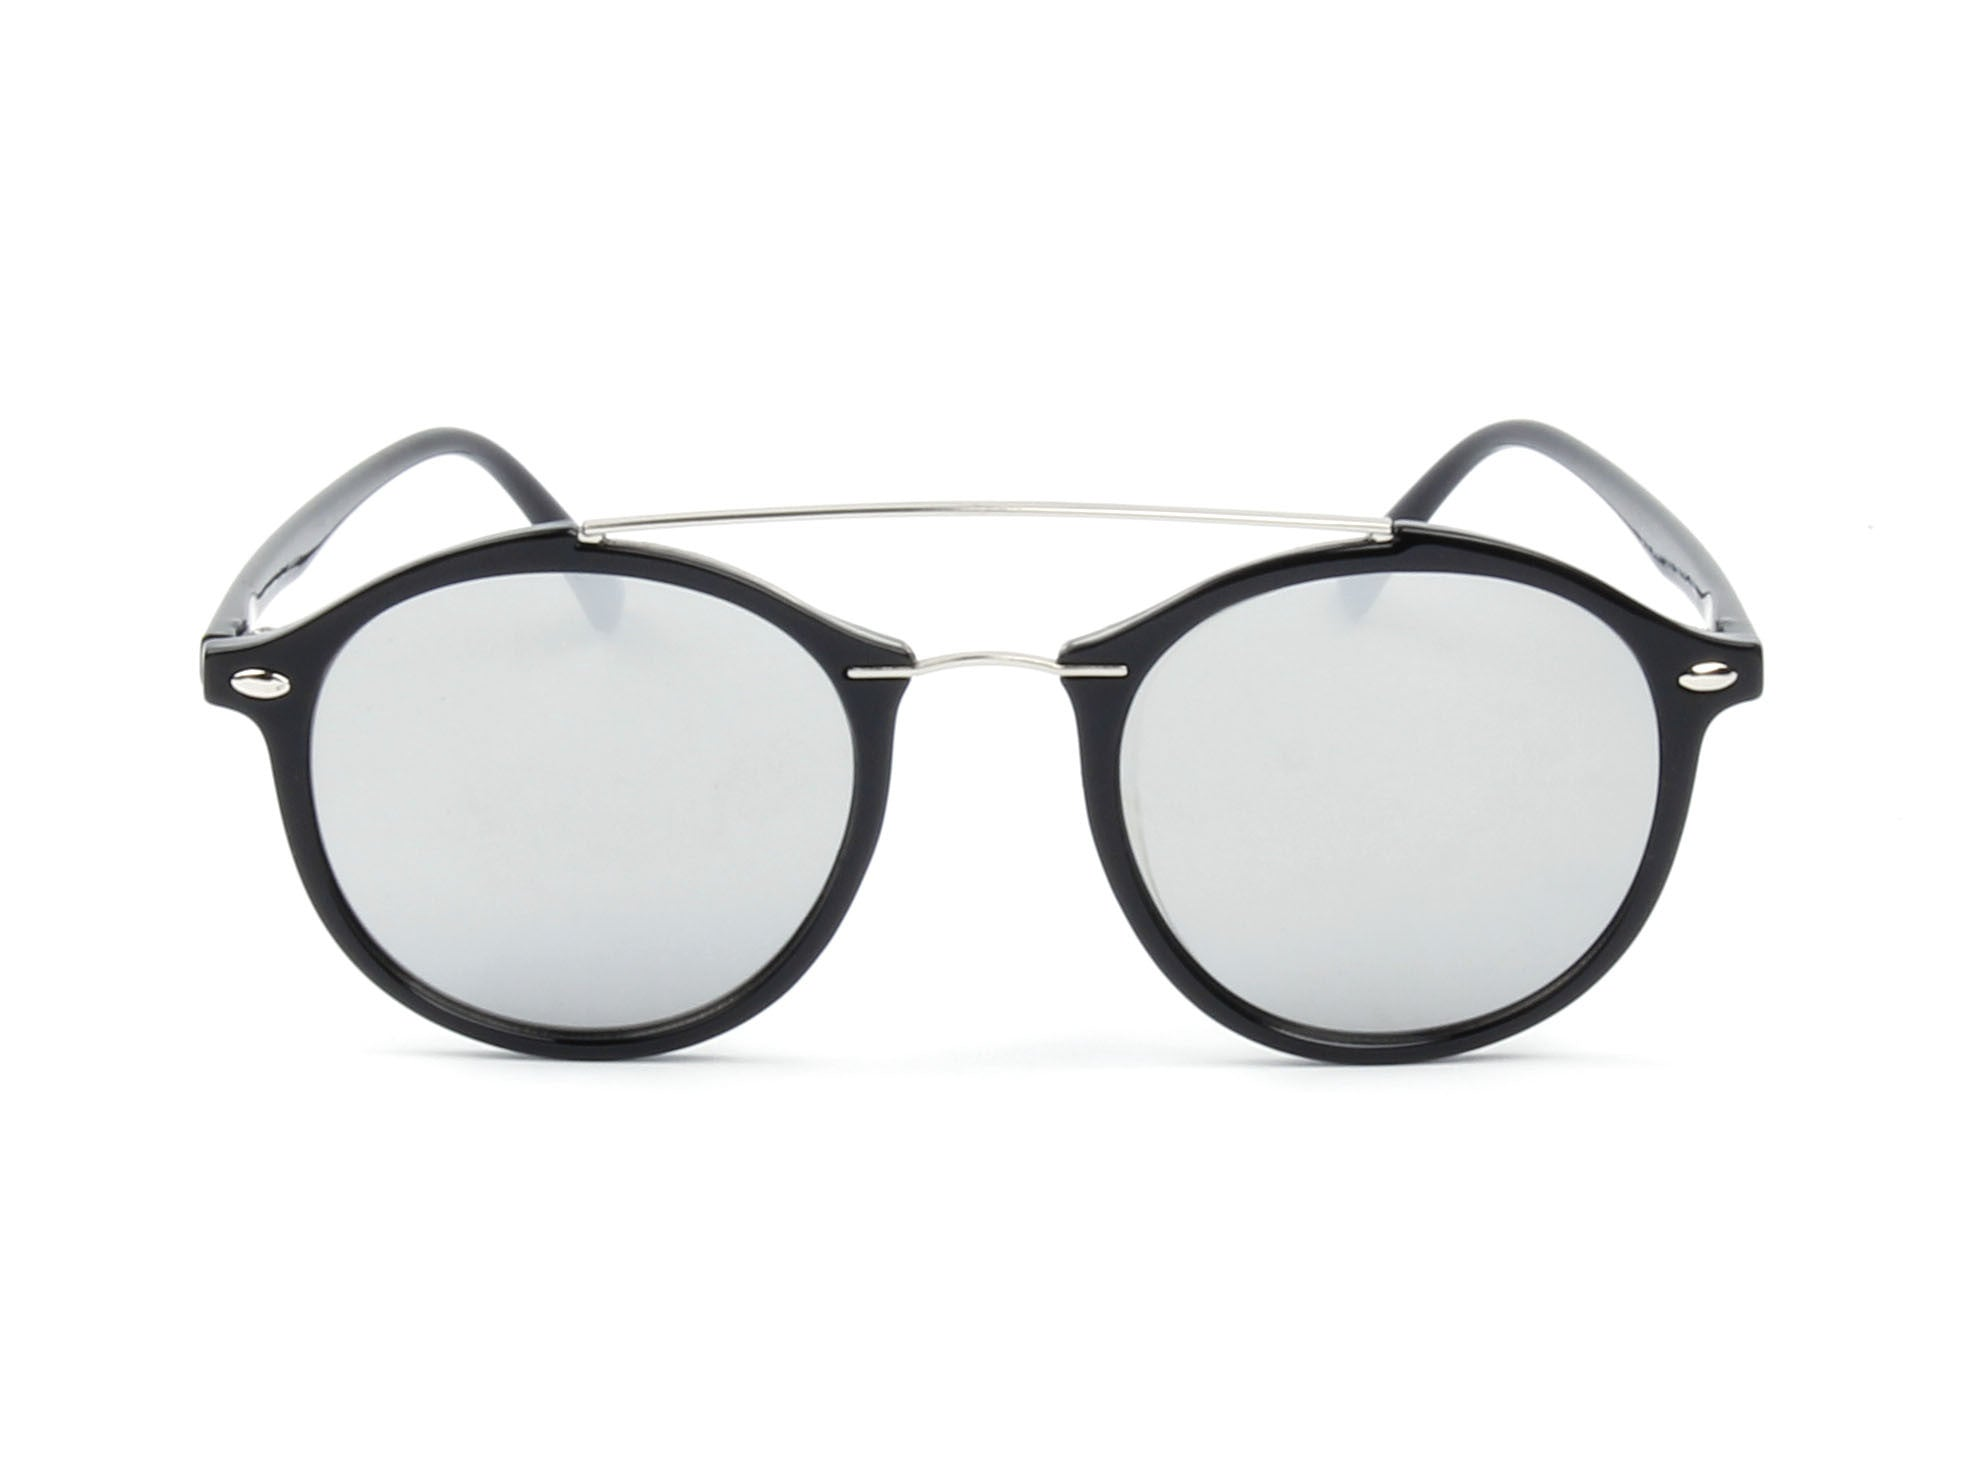 E17 - Modern Metal Browbar Round P3 Sunglasses - Iris Fashion Inc. | Wholesale Sunglasses and Glasses